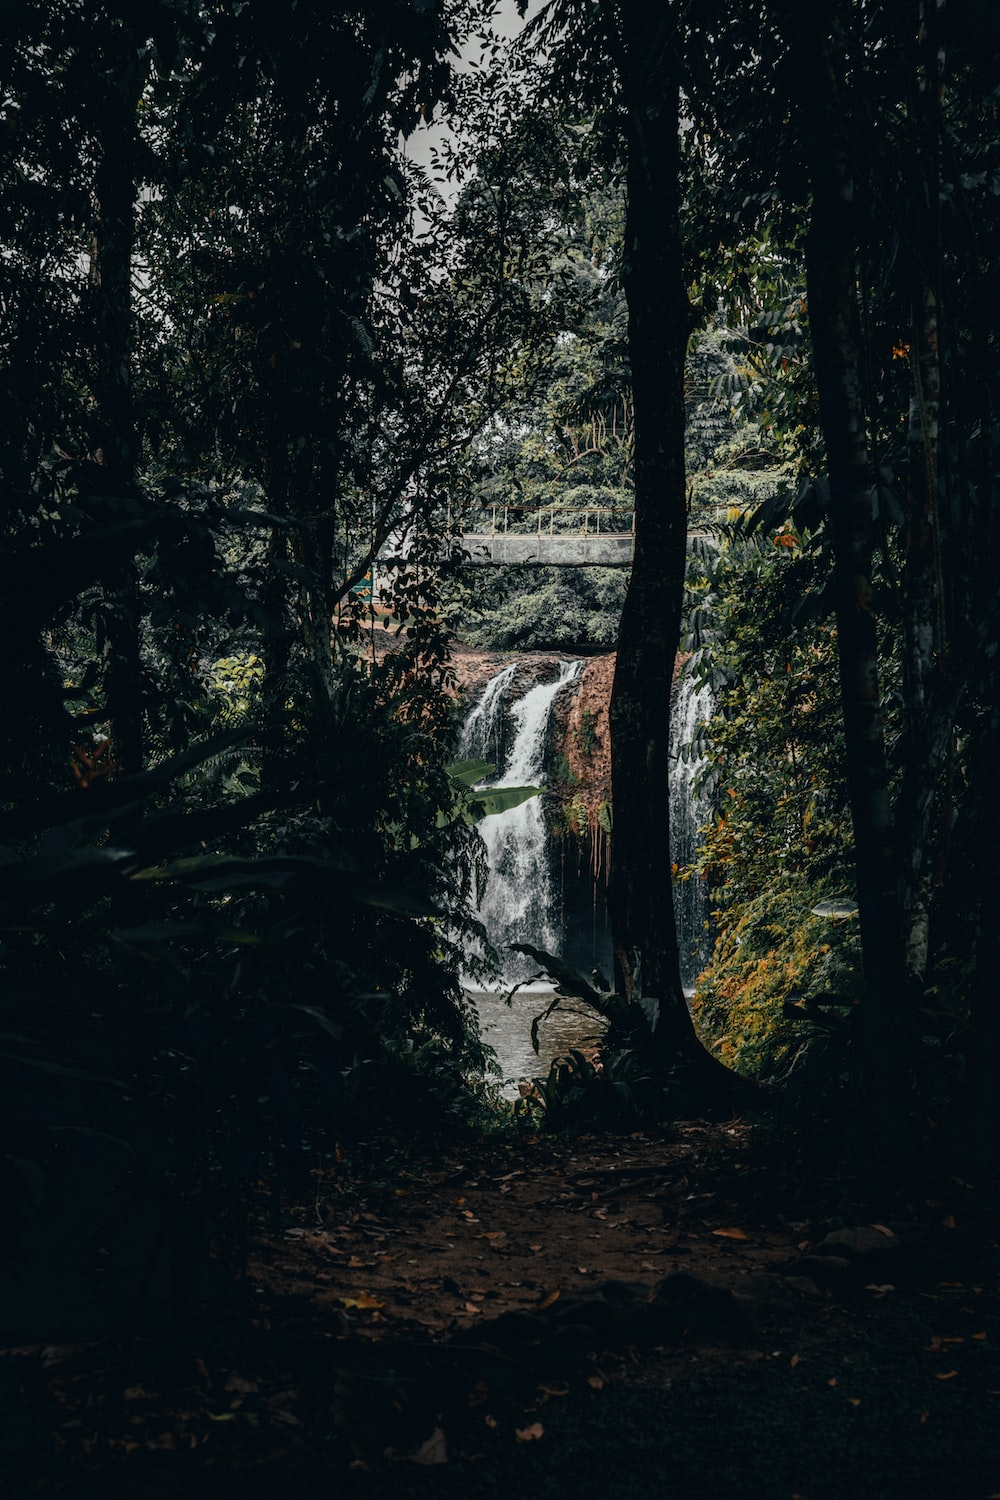 view of waterfalls through forest trees